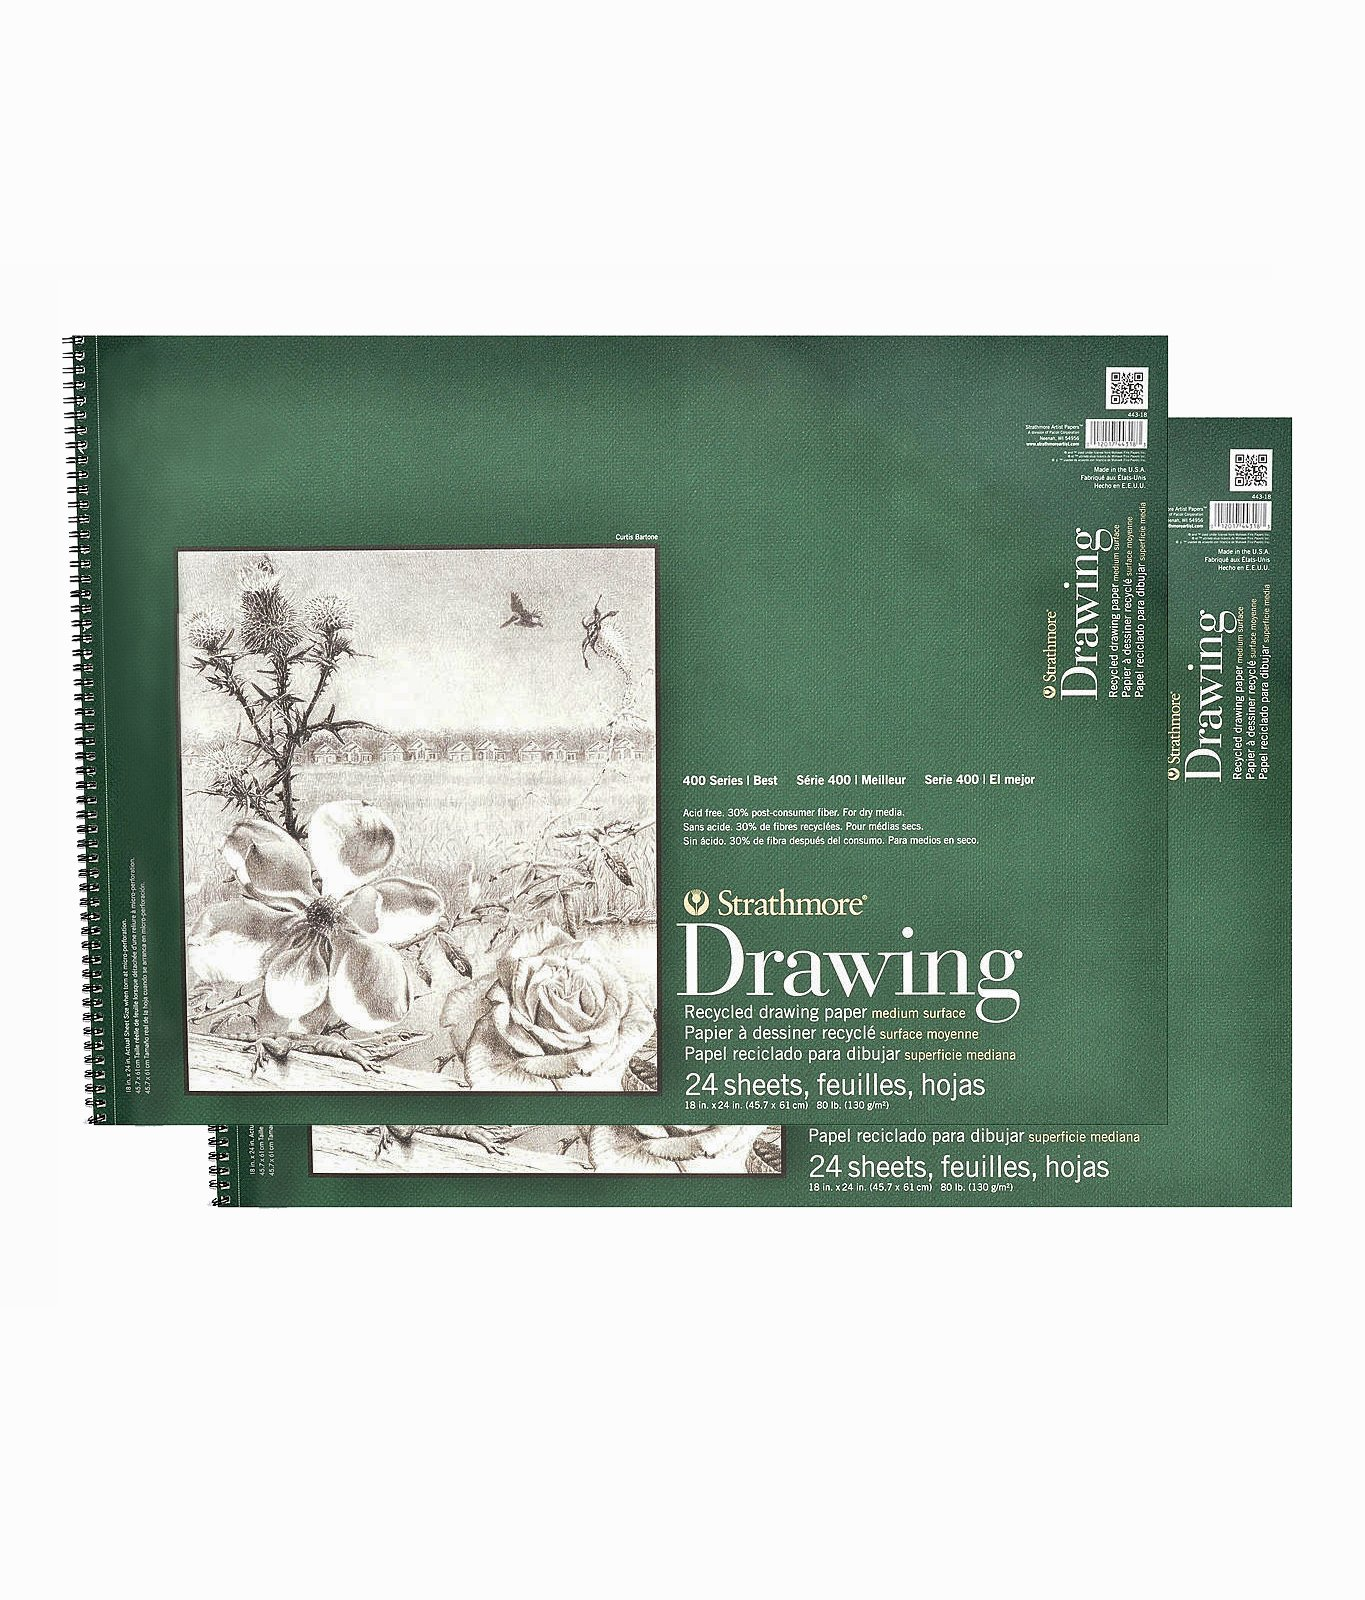 Strathmore Series 400 Premium Recycled Drawing Pads 18 in. x 24 in. [PACK OF 2 ]